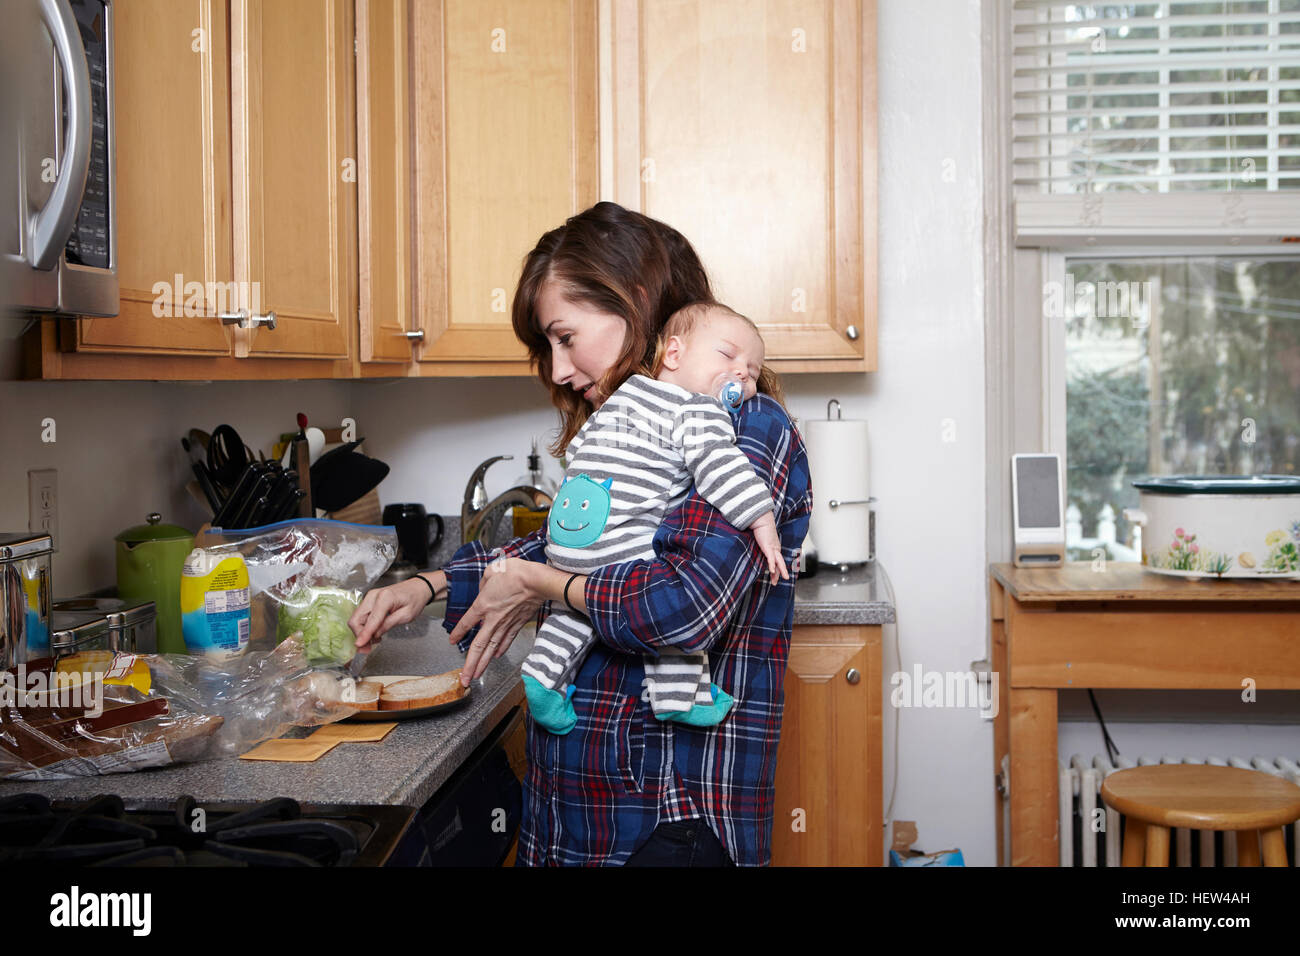 Mother holding sleeping baby boy and preparing sandwich - Stock Image